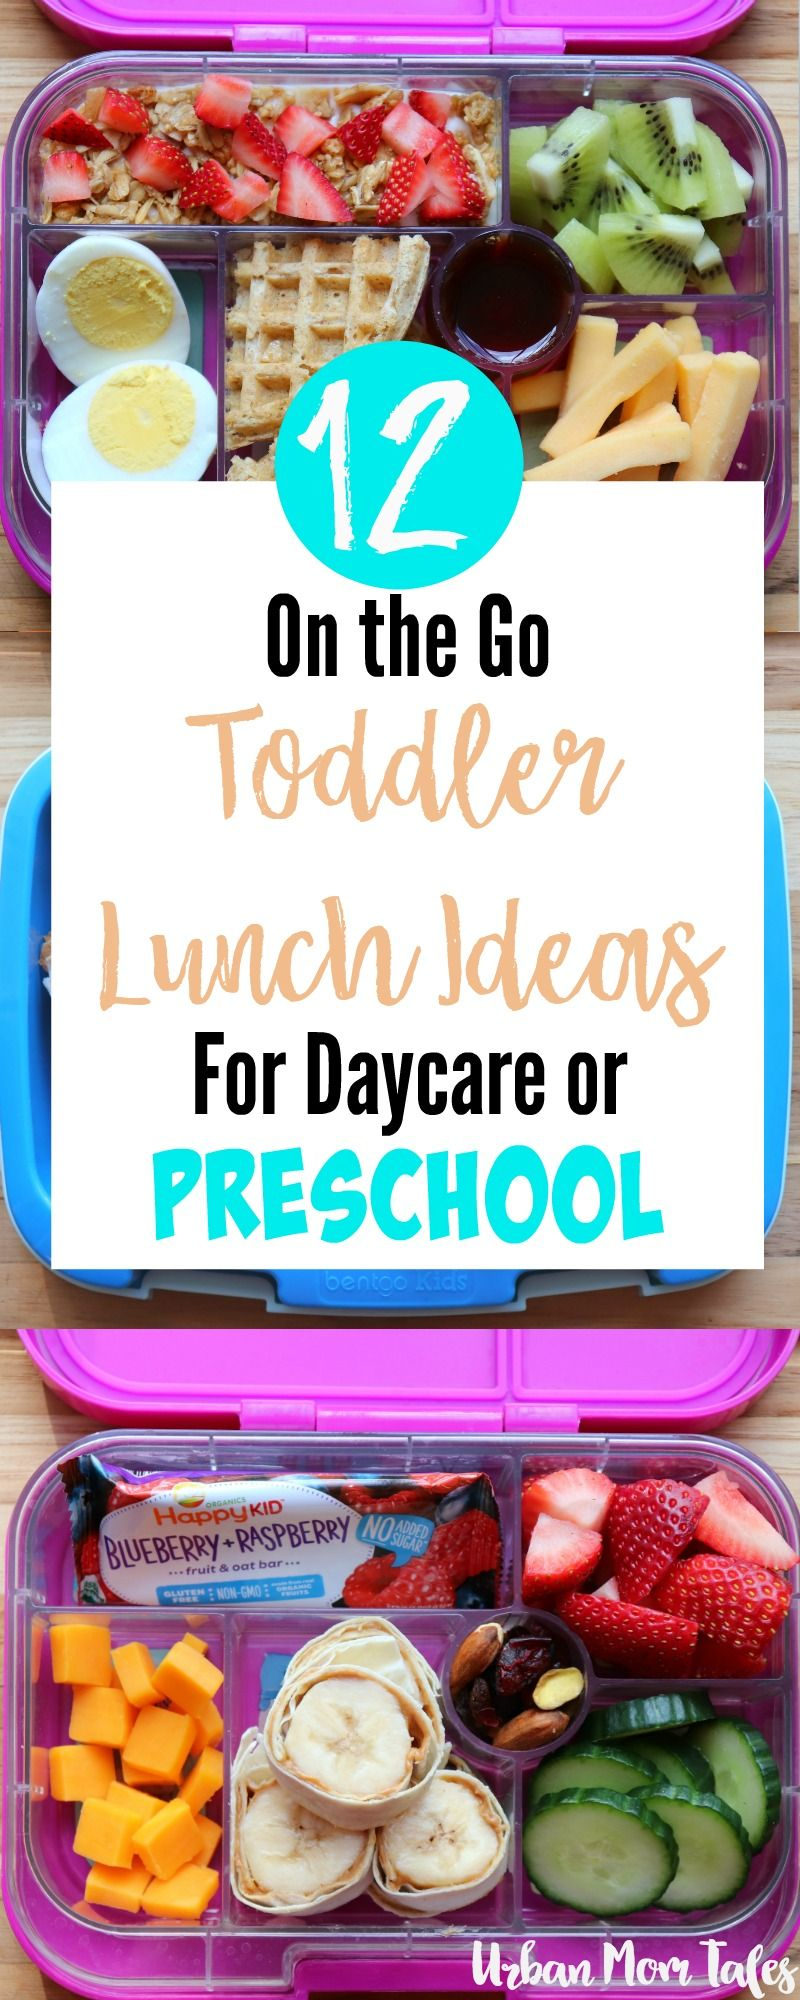 12 on the go toddler lunch ideas for daycare or preschool | food